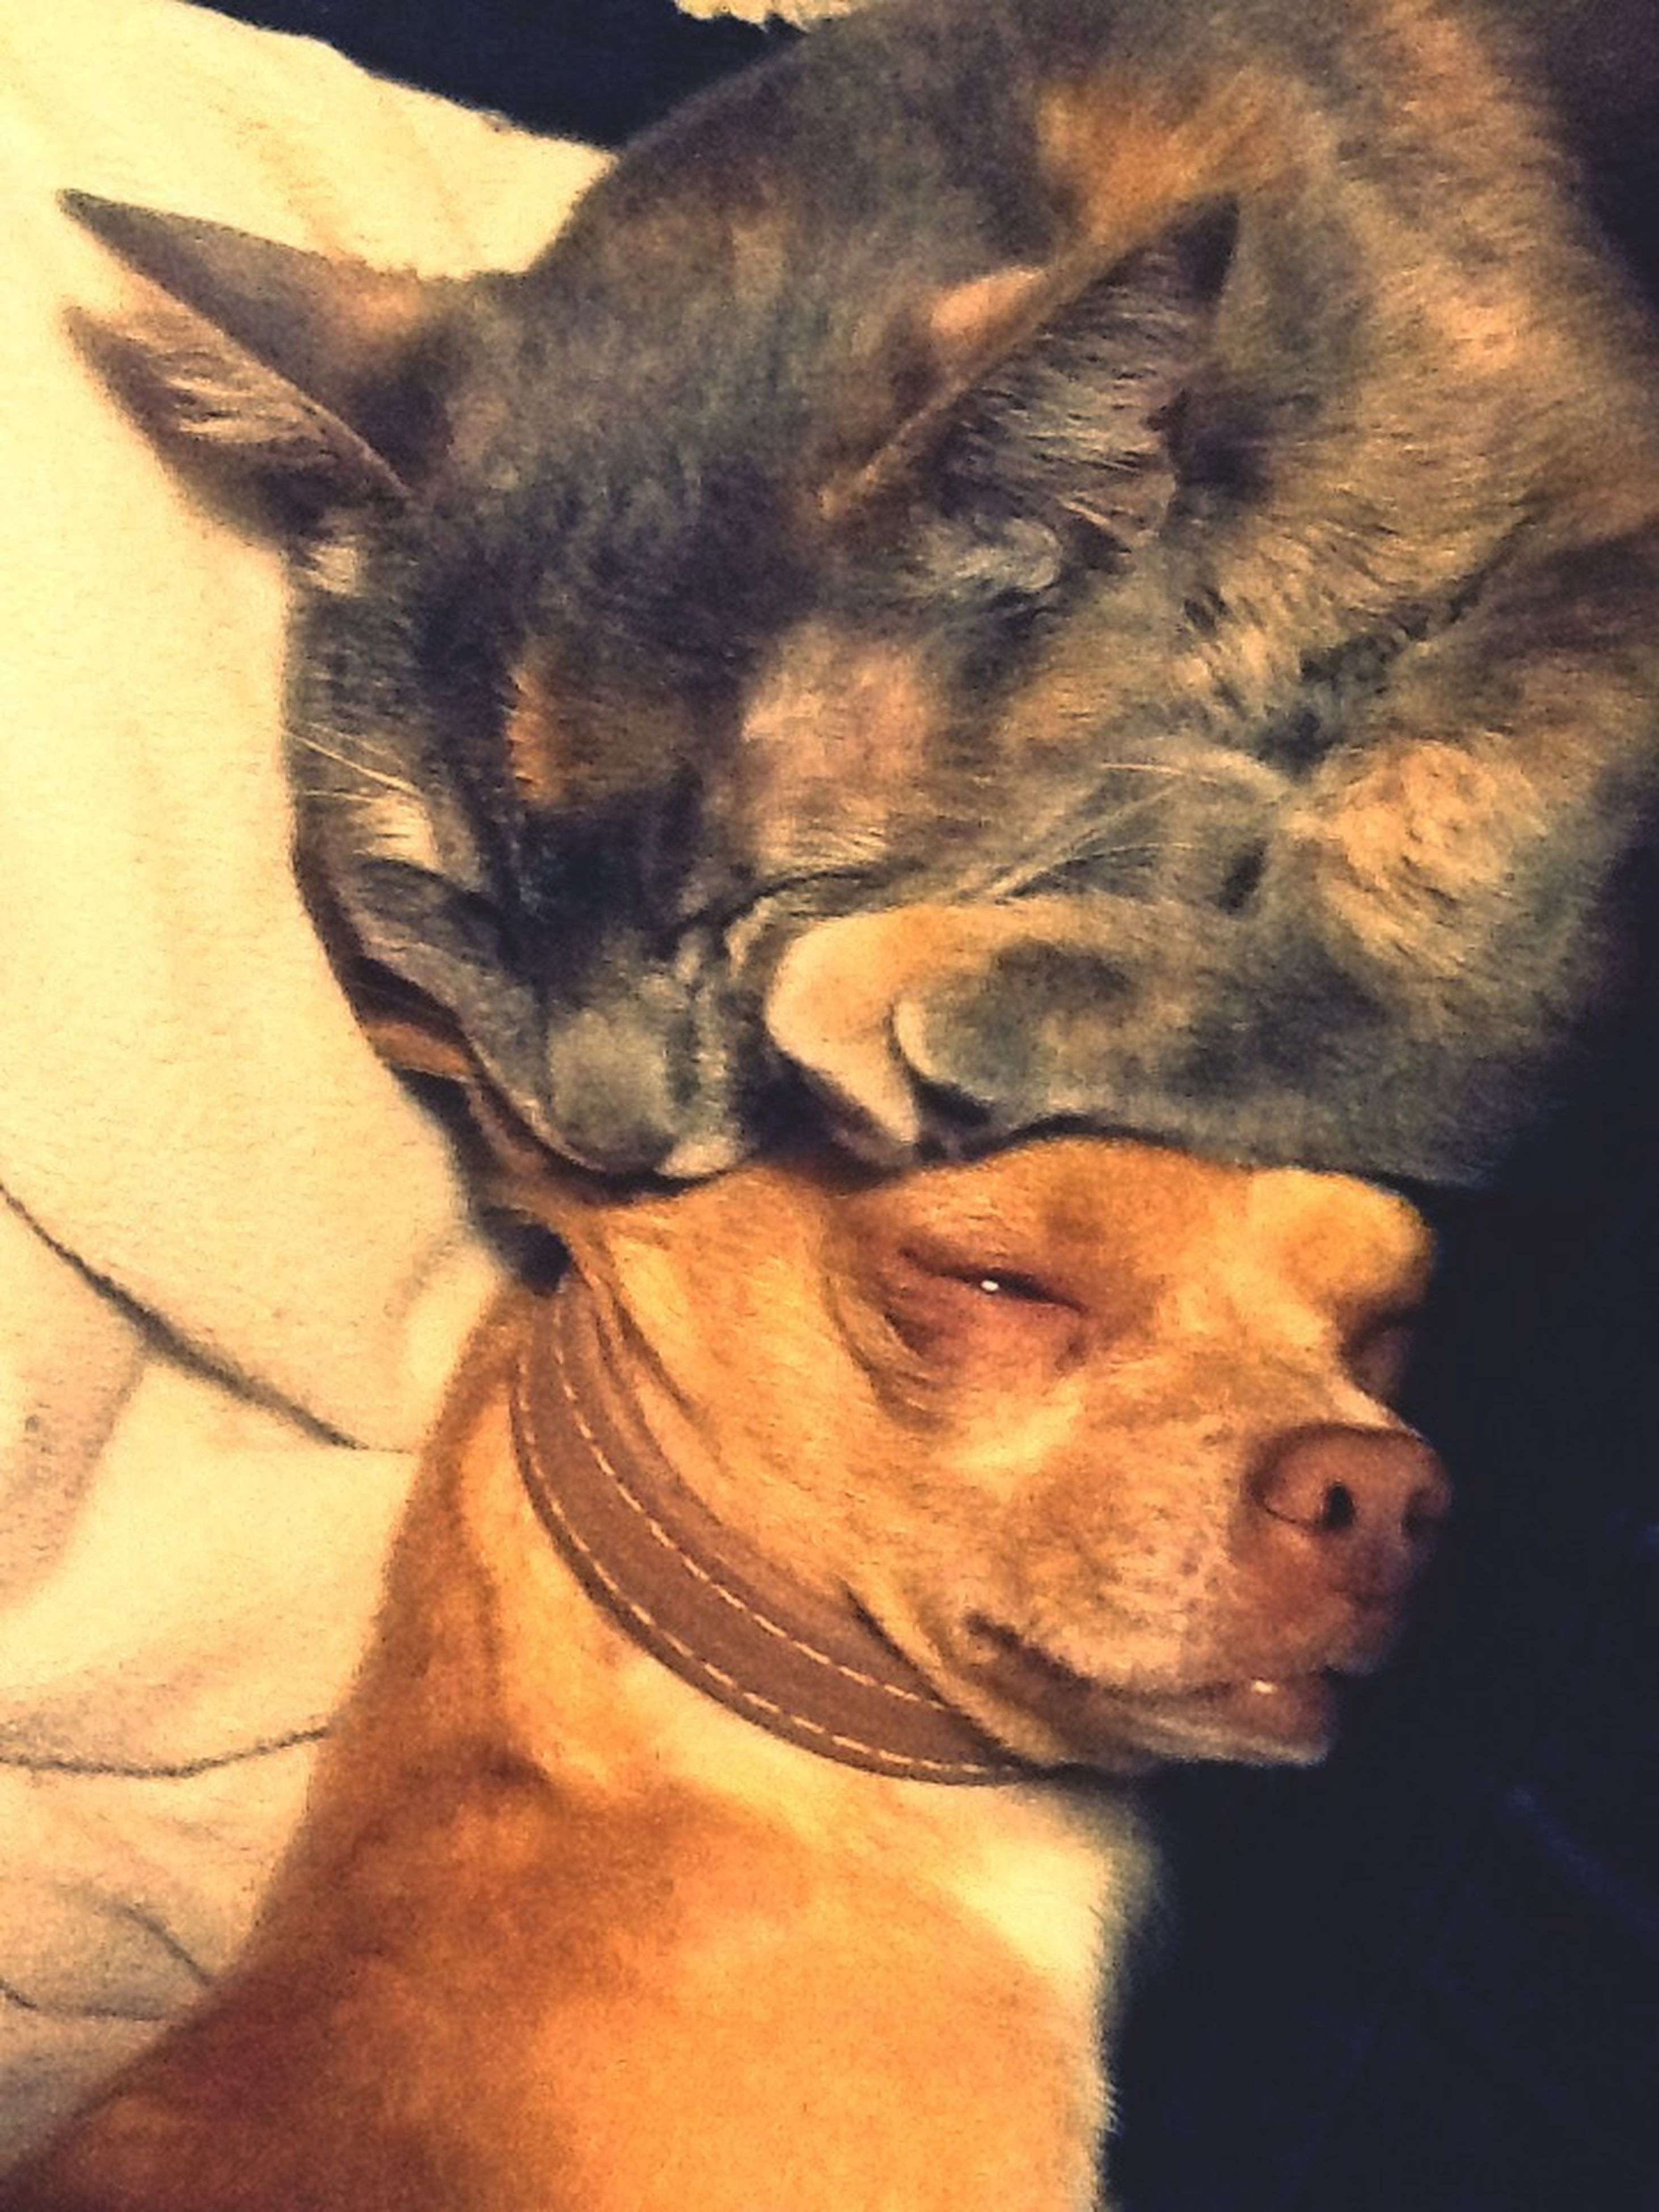 domestic animals, indoors, animal themes, one animal, mammal, pets, close-up, dog, relaxation, sleeping, animal head, home interior, lying down, eyes closed, resting, animal body part, part of, domestic cat, home, no people